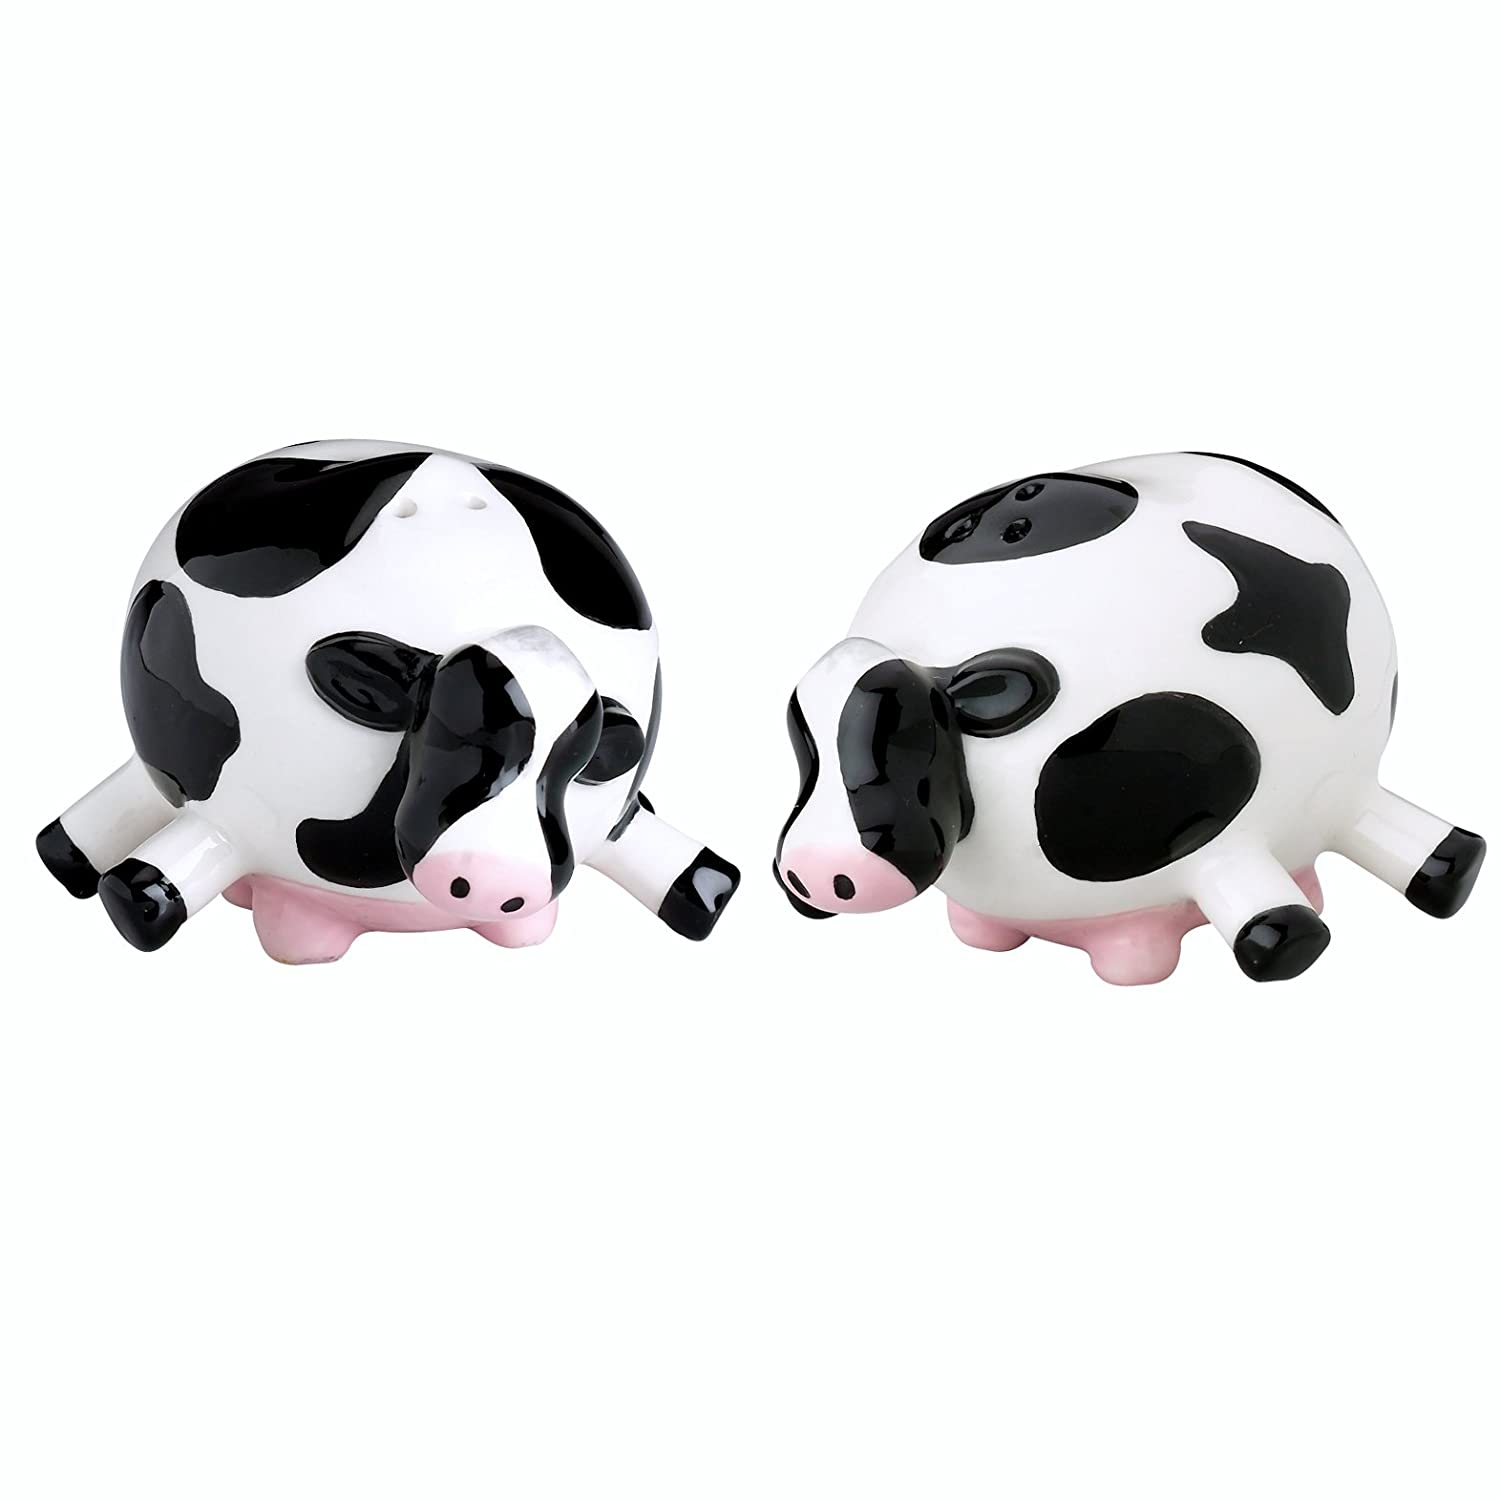 Amazon Com Boston Warehouse Udderly Cows Salt And Pepper Shaker Set Combined Pepper And Salt Shakers Kitchen Dining